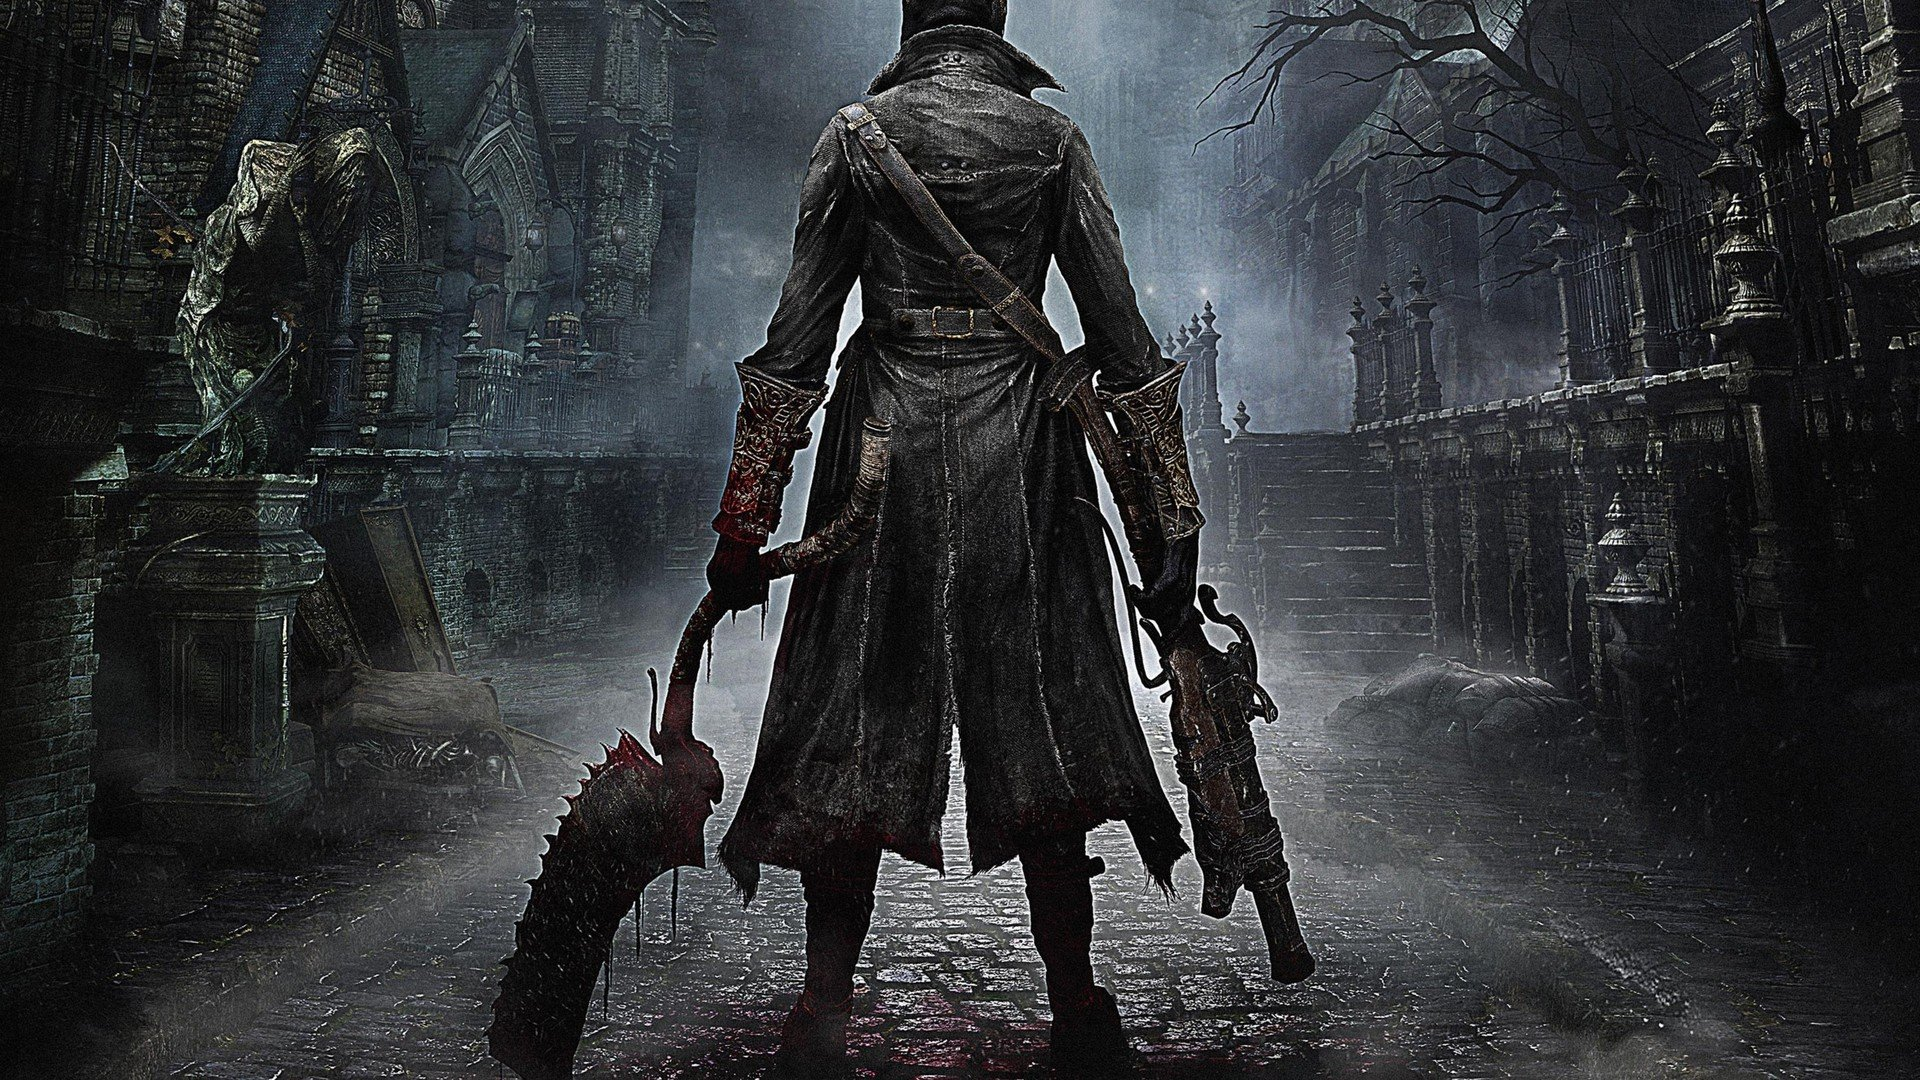 Bloodborne Now Getting A Patch To Run At 60 FPS For PlayStation 4 Pro From Australian Modder, Lance McDonald